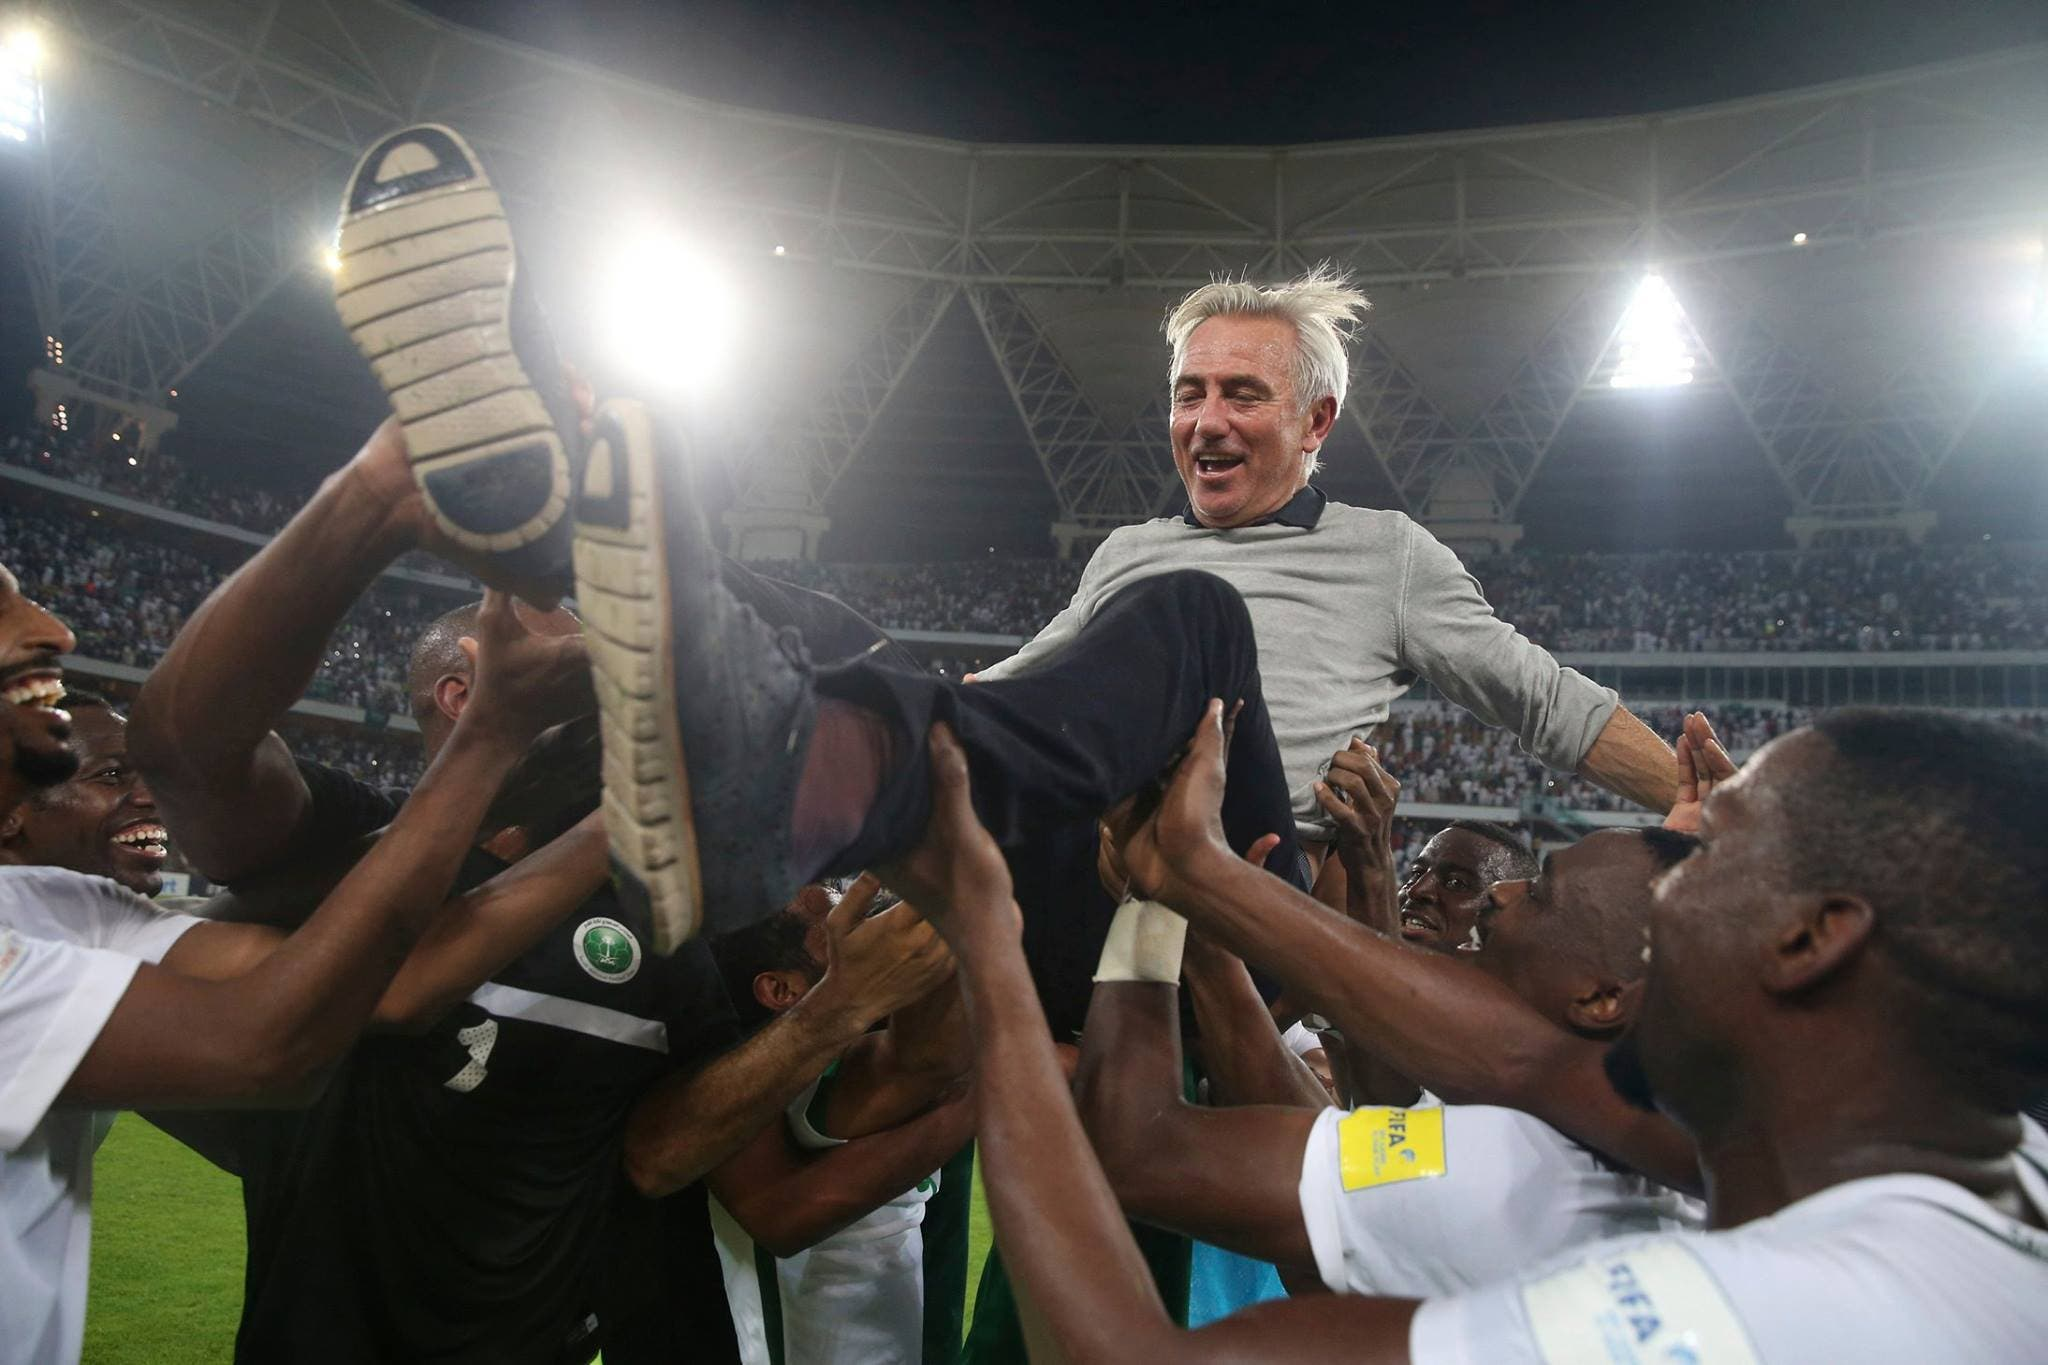 Saudi Arabia's head coach Bert van Marwijk is thrown into the air by his players after winning the 2018 World Cup group B qualifying soccer match between Saudi Arabia and Japan in Jiddah, Saudi Arabia, Tuesday, Sept. 5, 2017. Saudi Arabia won 1-0. (AP)